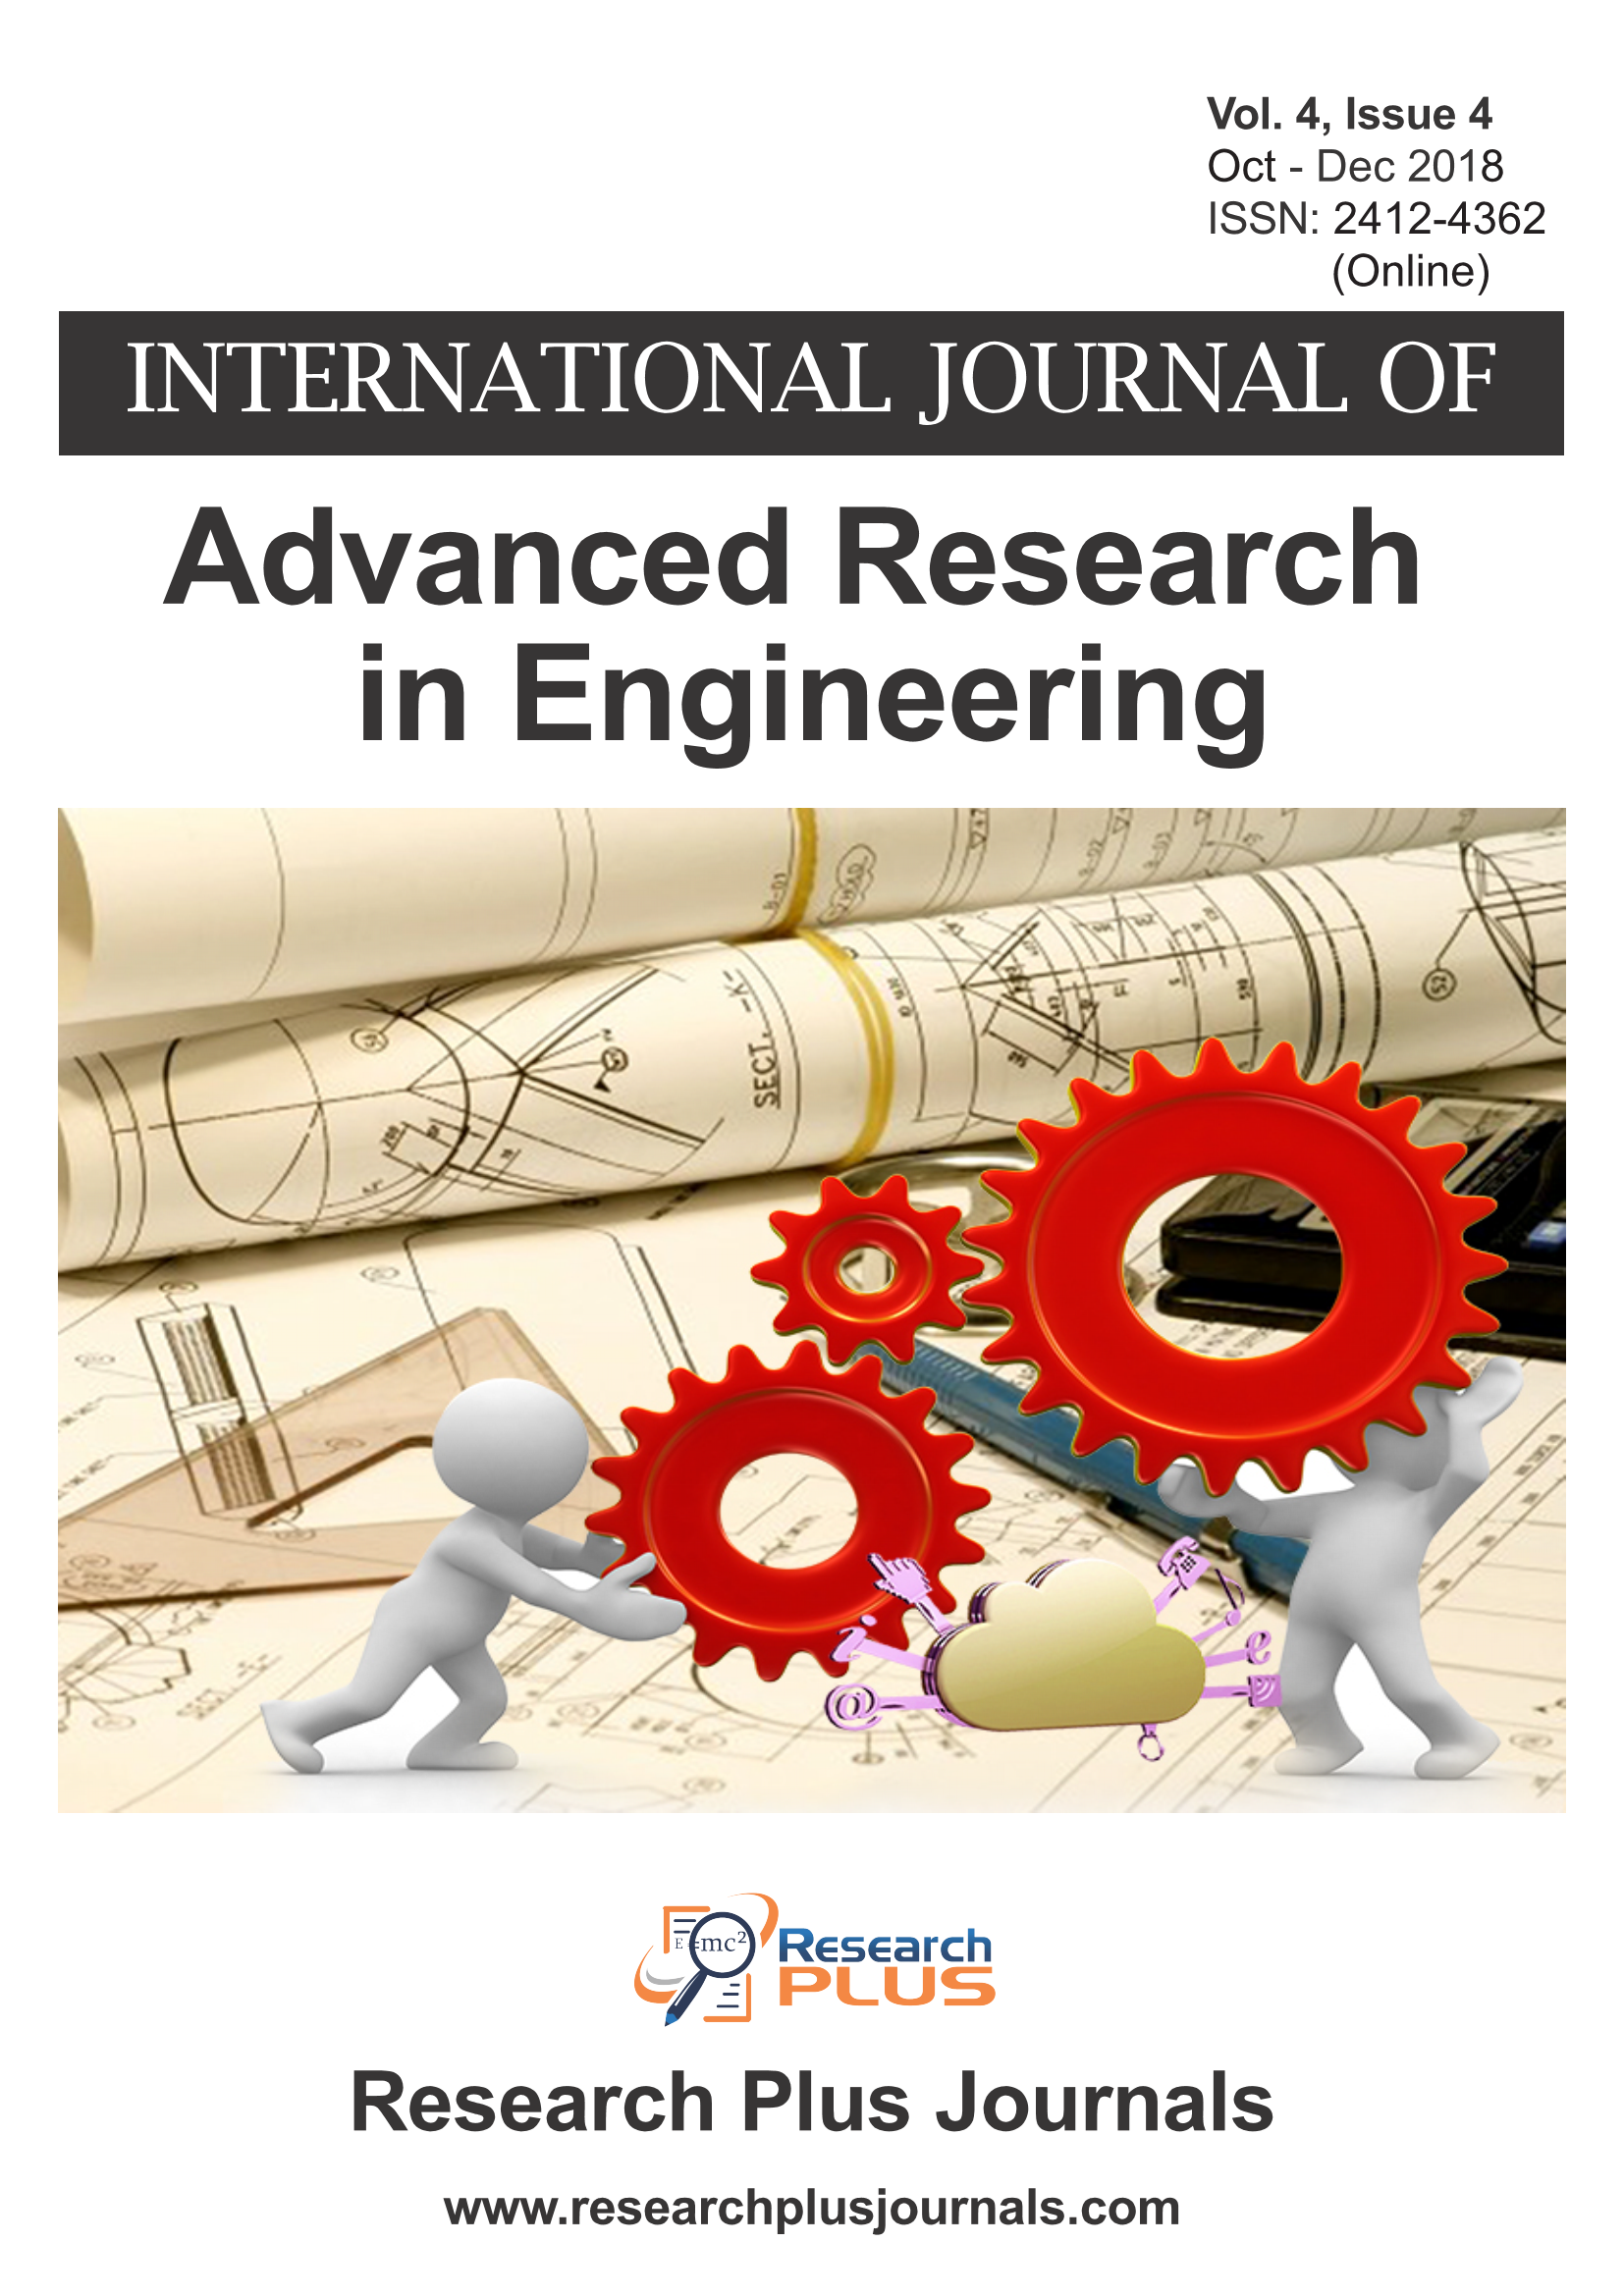 Volume 4, Issue 4, International Journal of Advanced Research in Engineering (IJARE)  (Online ISSN 2412-4362)